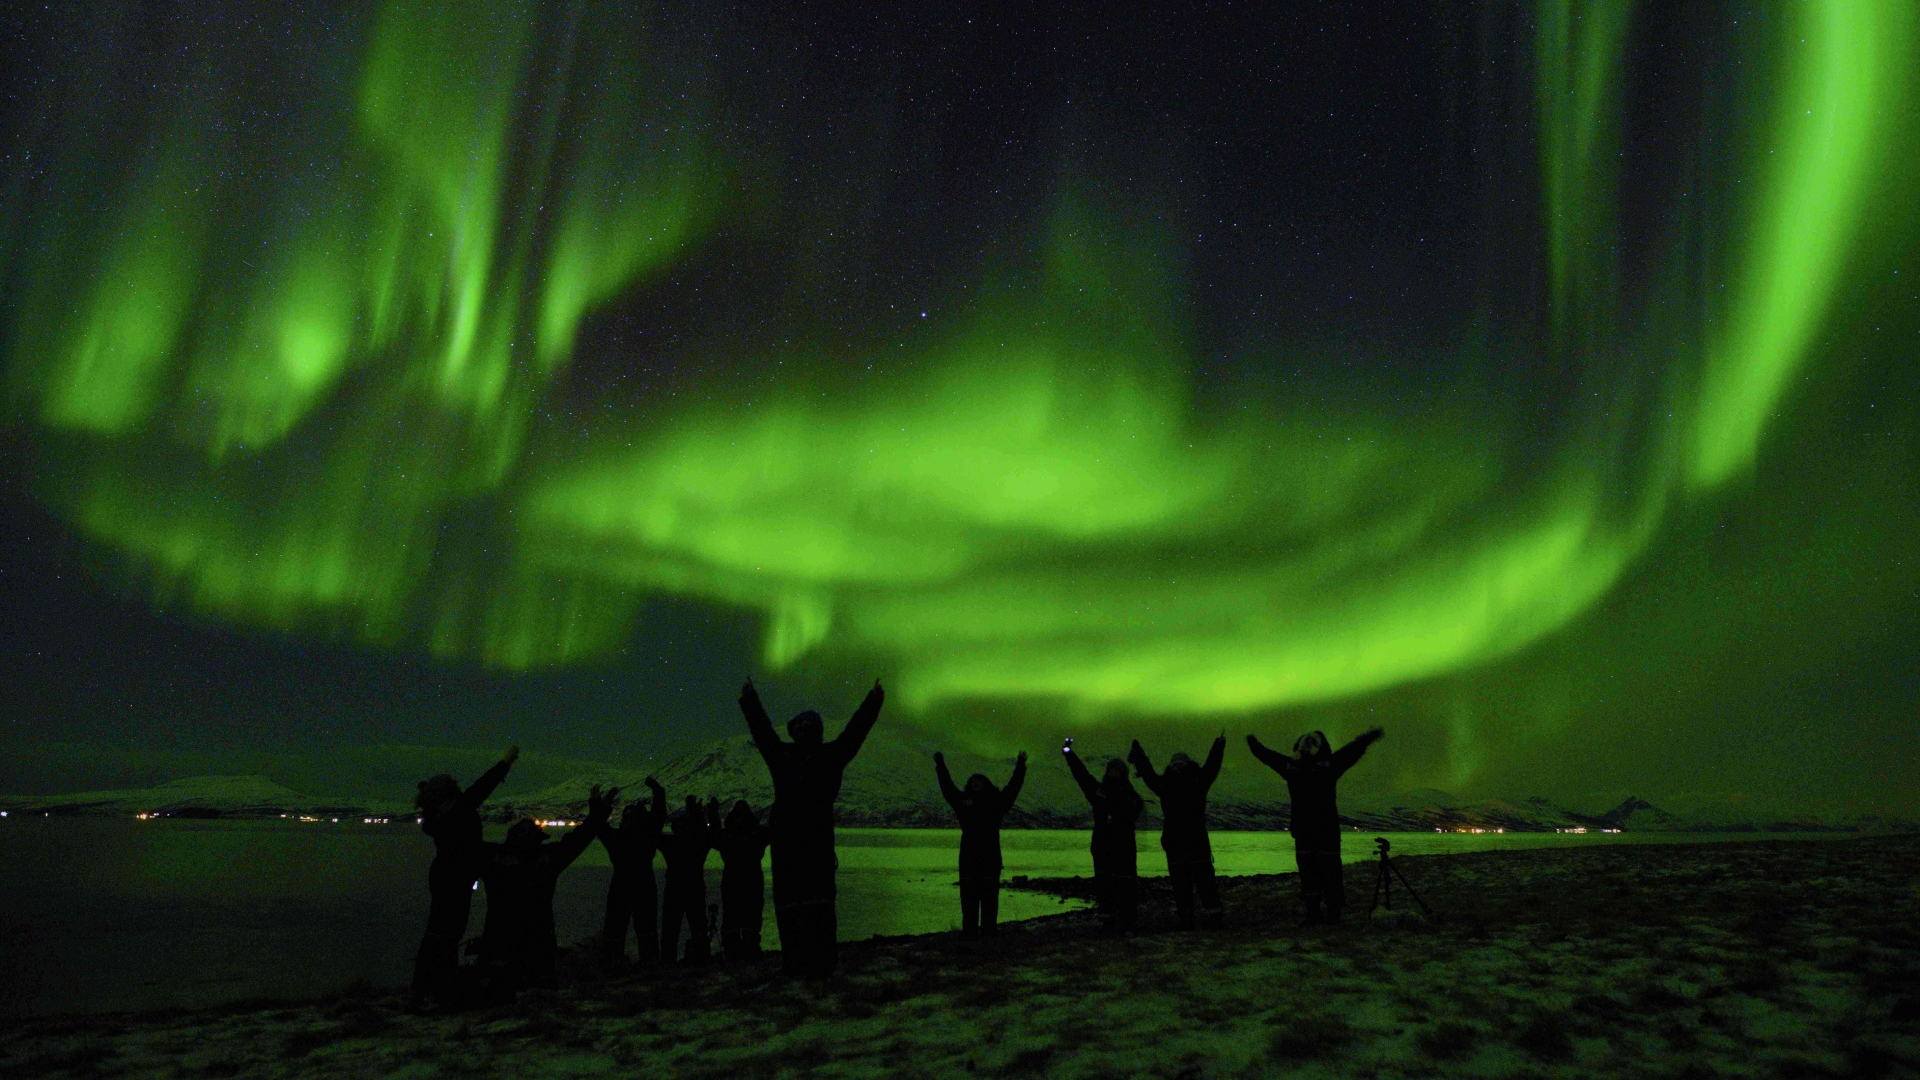 People admiring the Northern Lights